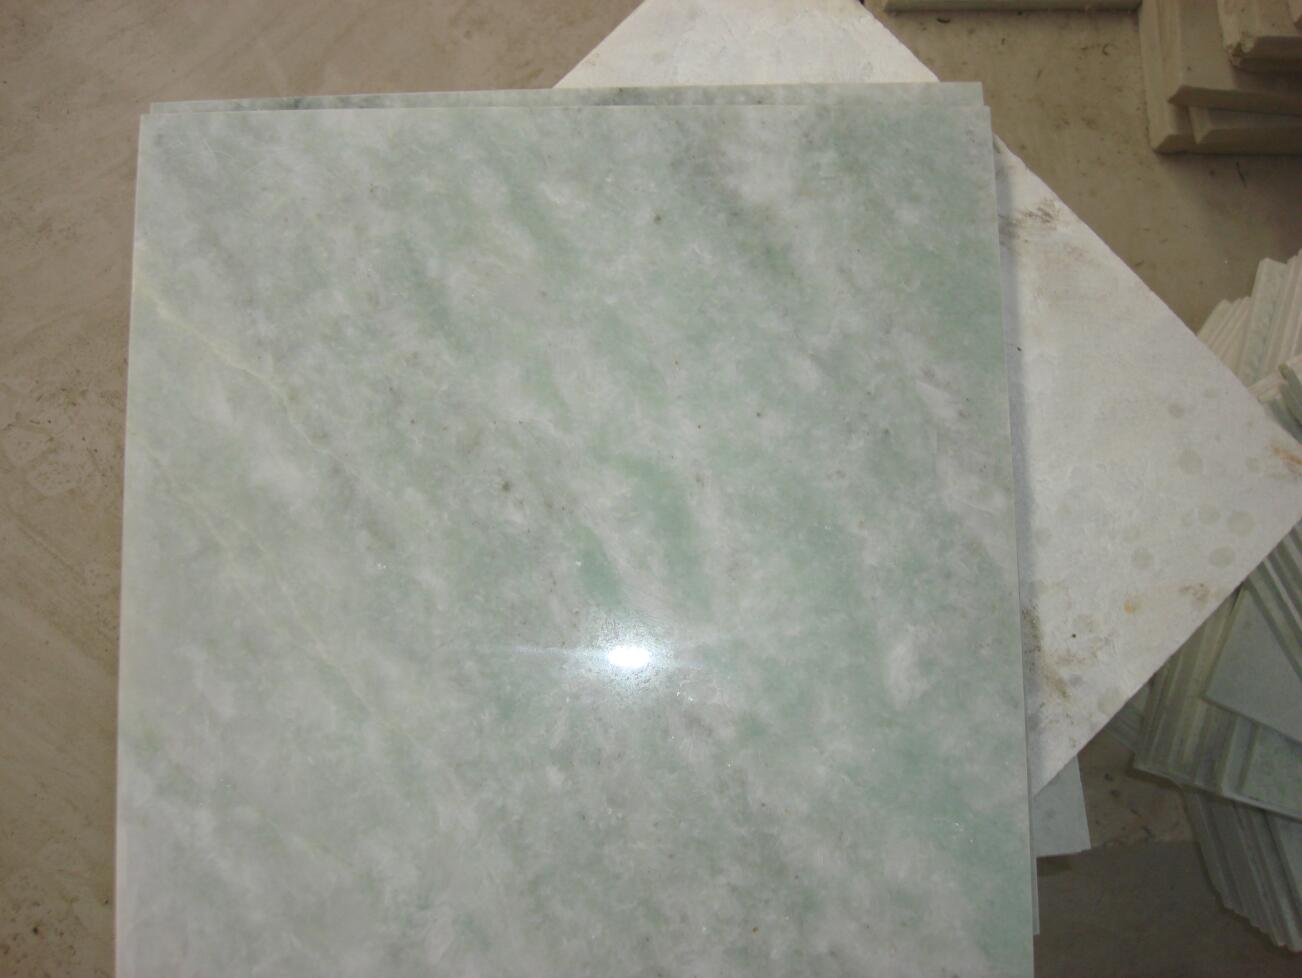 Ming Green, Green Marble